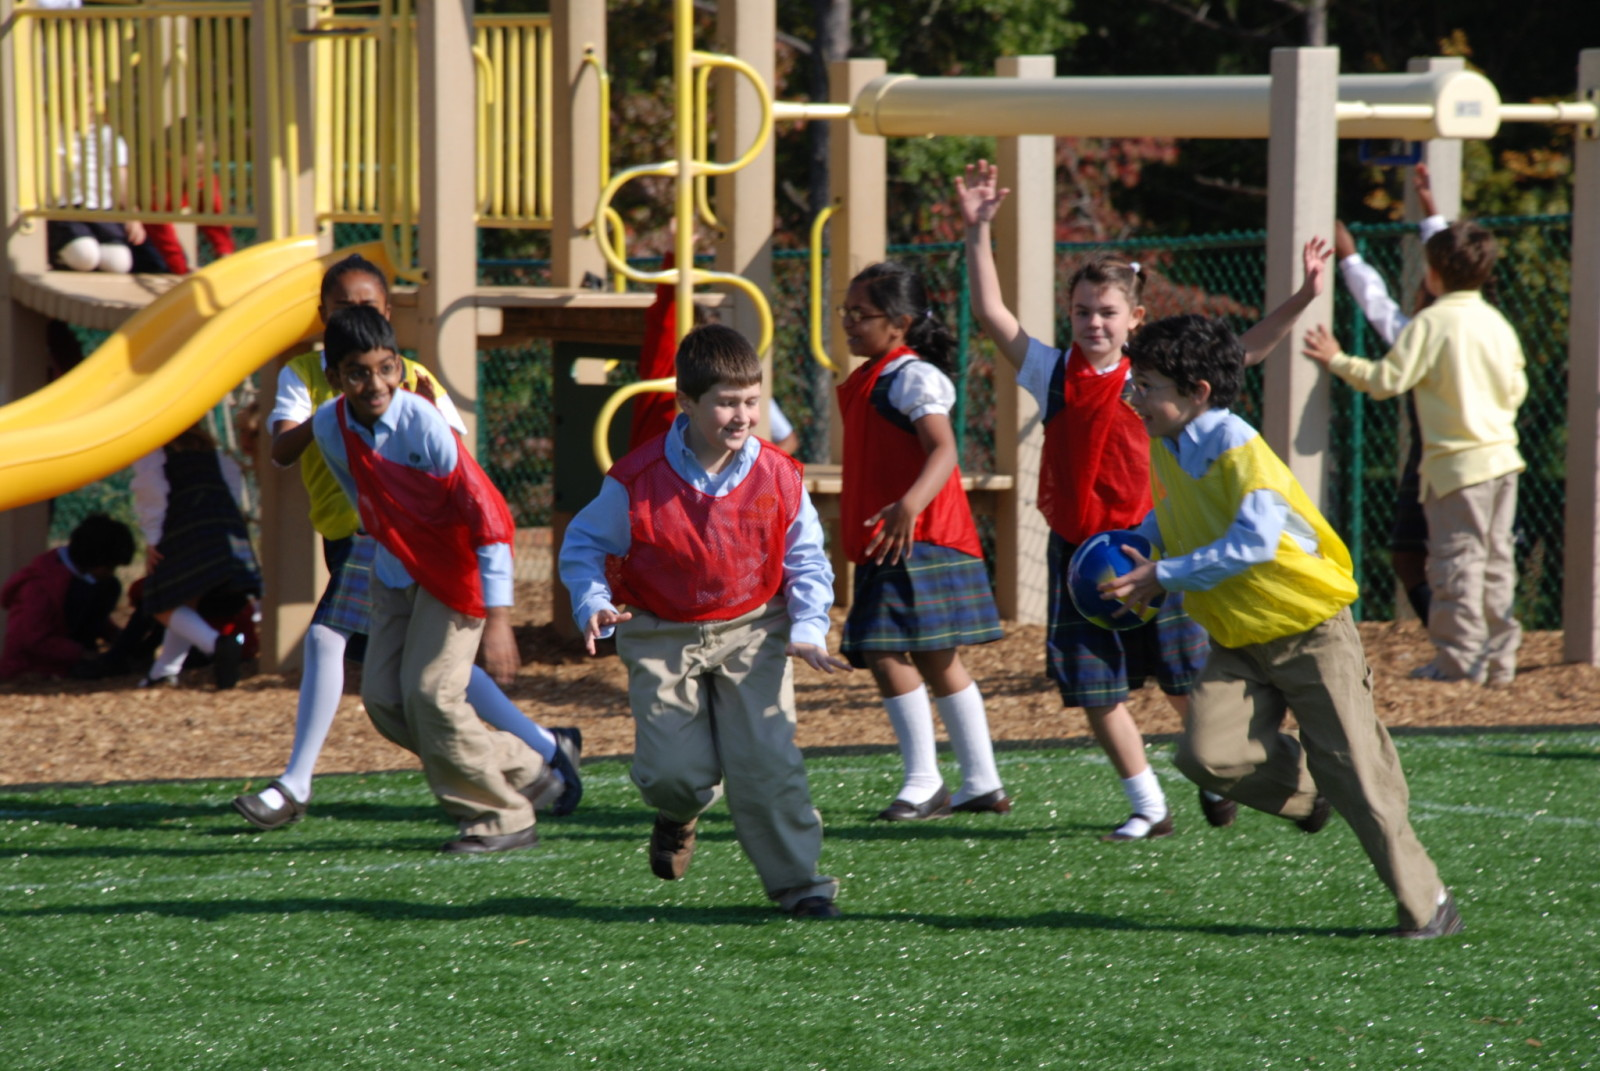 Students playing at McGinnis Woods Private School